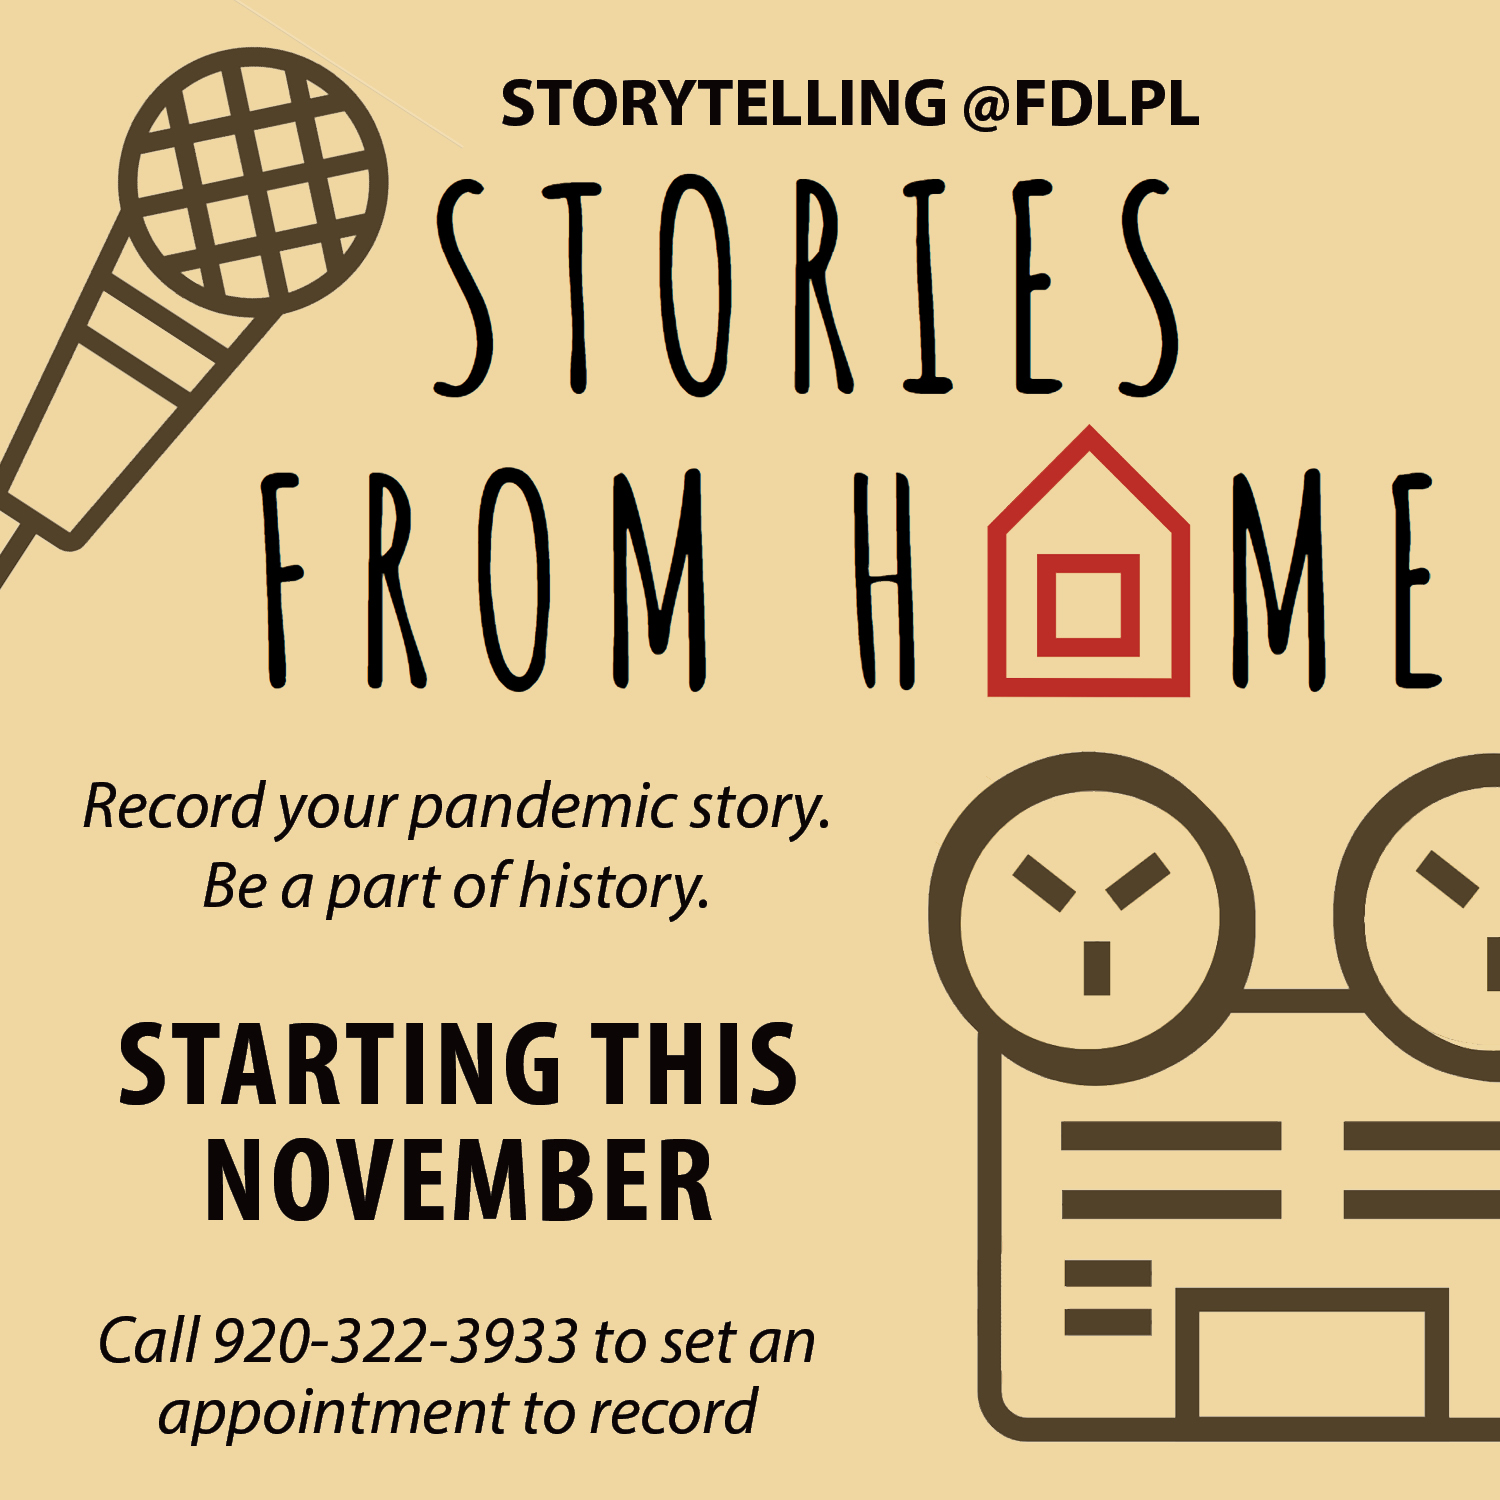 Community invited to share pandemic stories for new history initiative